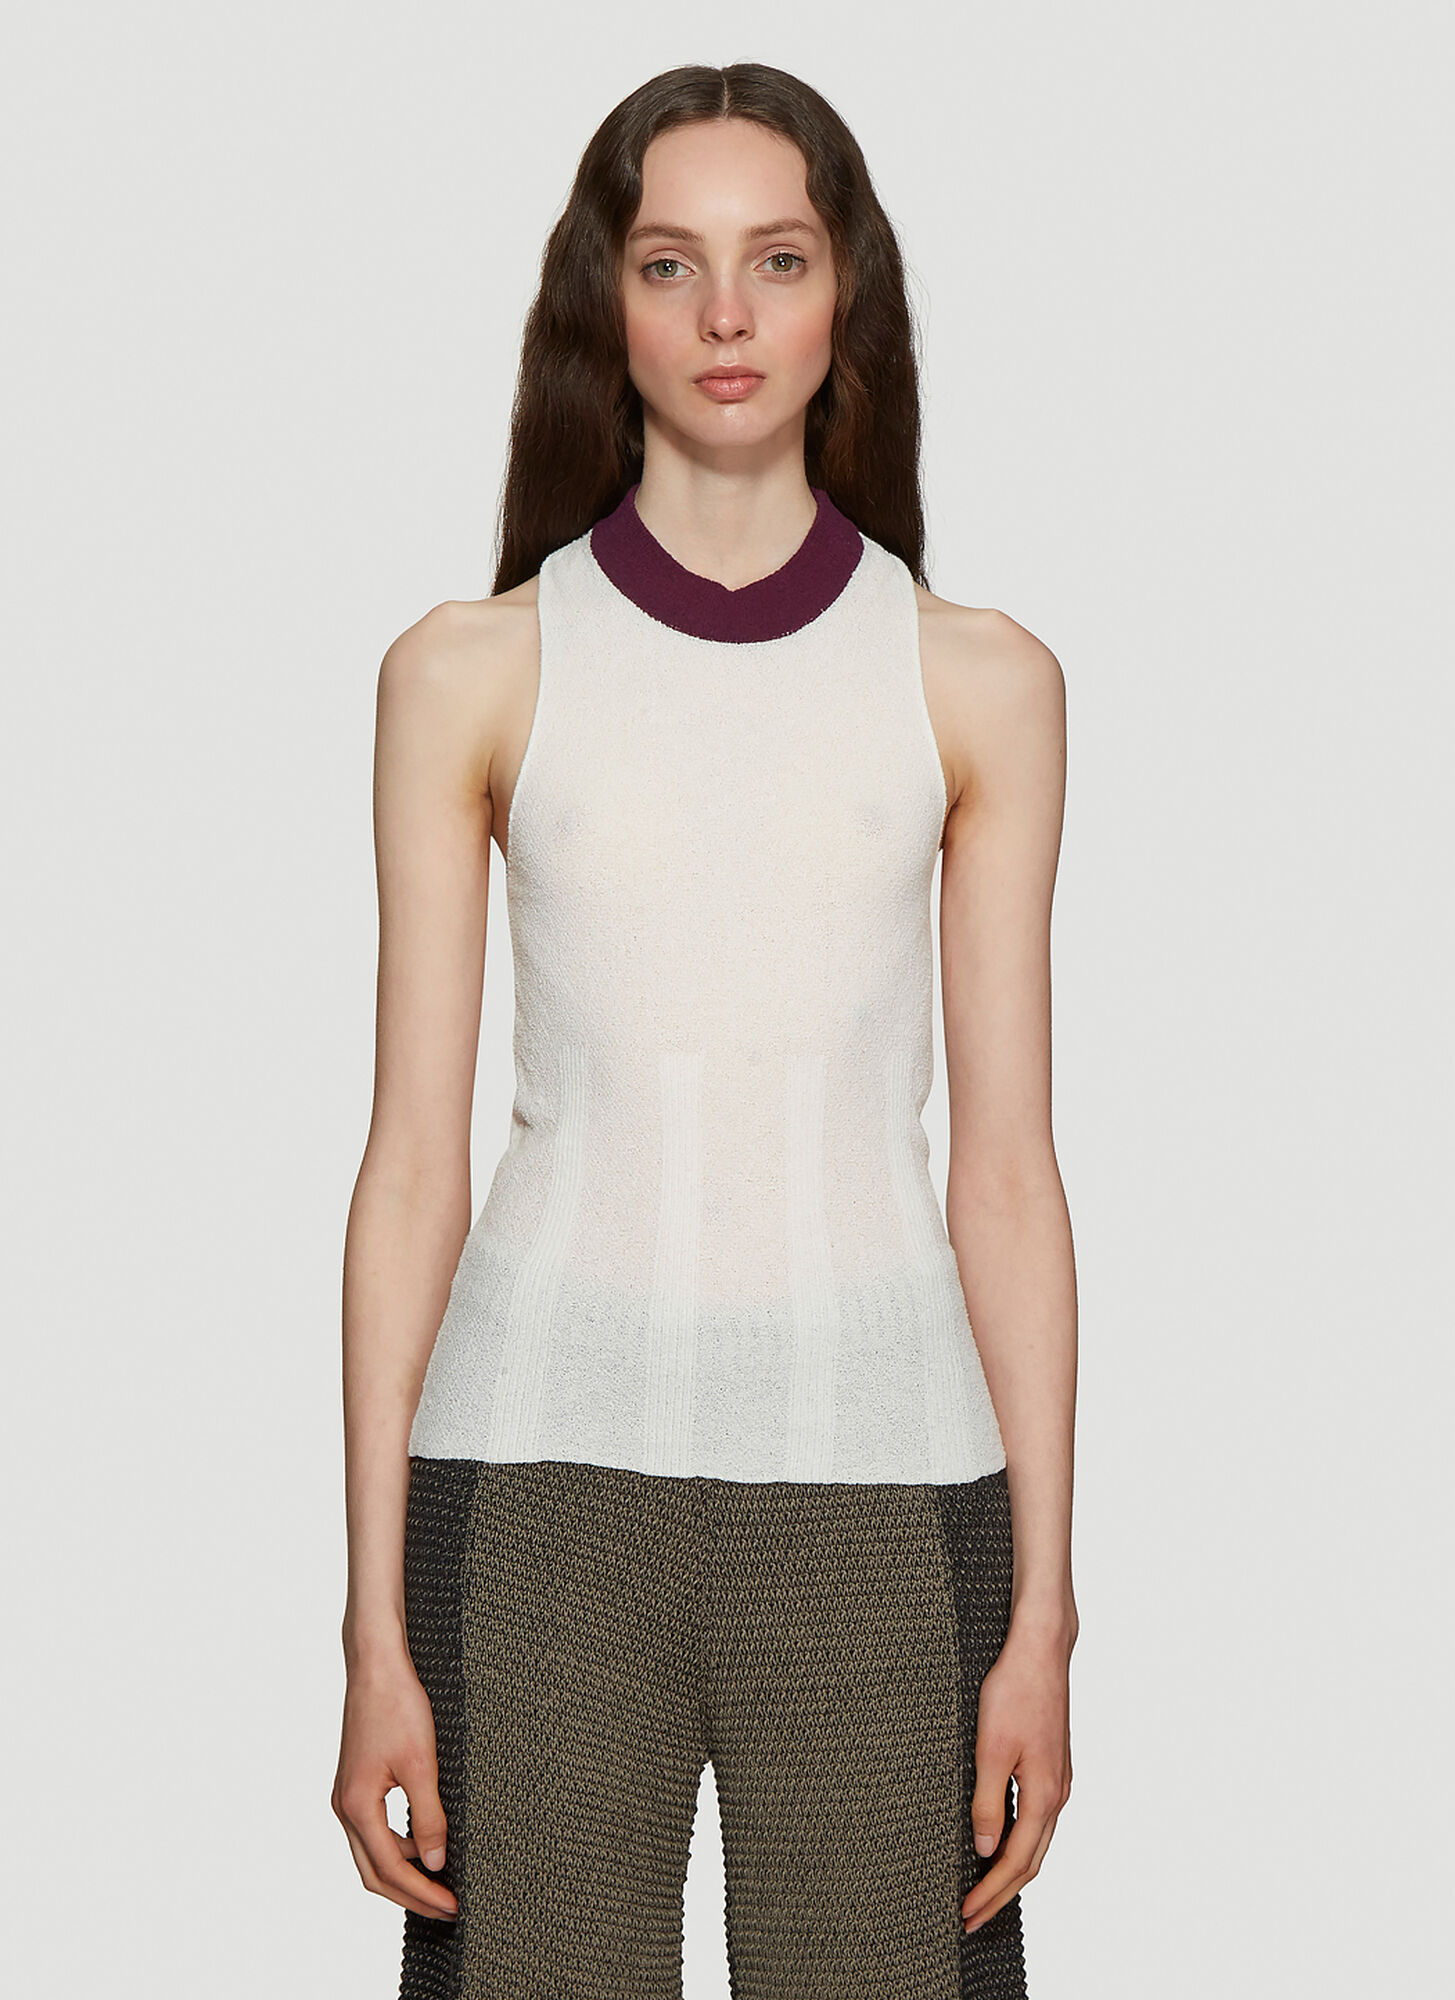 Eckhaus Latta Open Back Knitted Tank Top in White